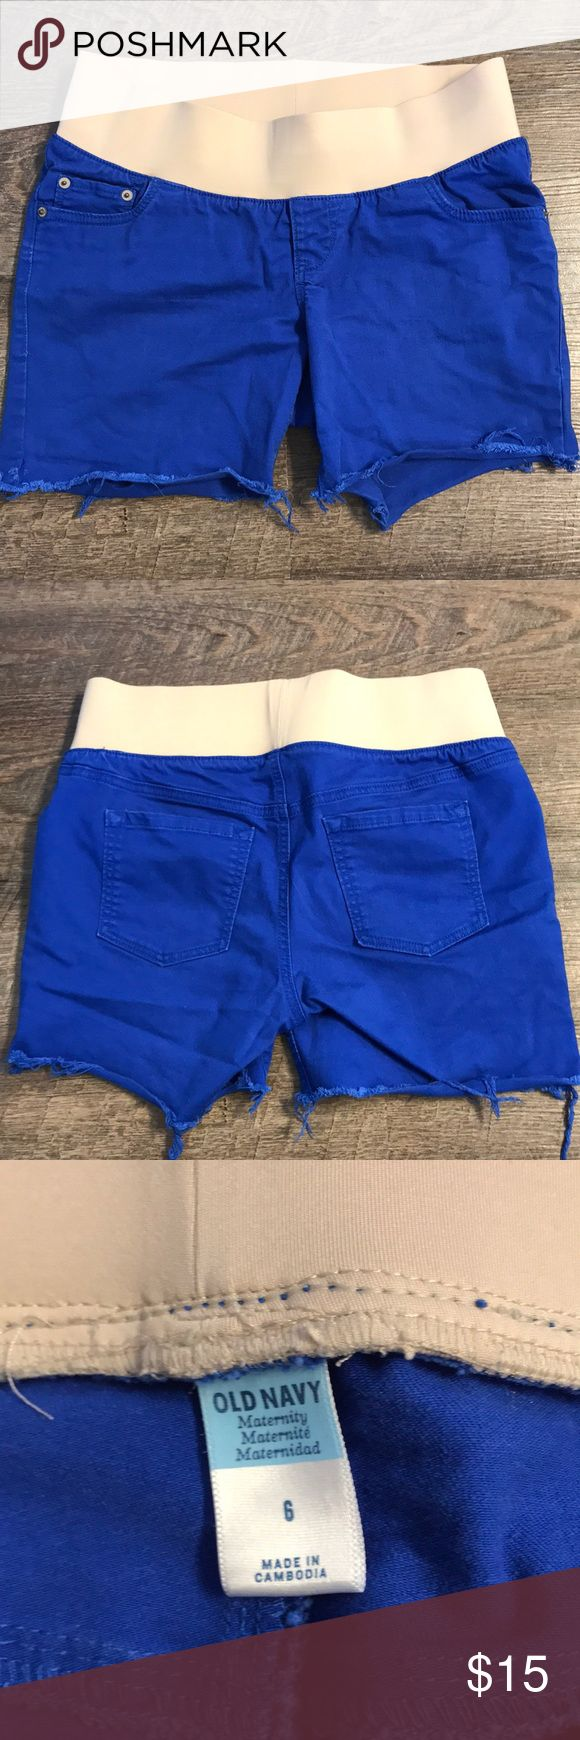 """Maternity Shorts in Cobalt Blue Size 6 Maternity Shorts in Cobalt Blue Size 6 Super cute shorts, perfect for that summer pregnancy.  I wore these everywhere this summer.  5"""" inseam, 3"""" band and  the material has stretch to it as well. Old Navy Shorts"""